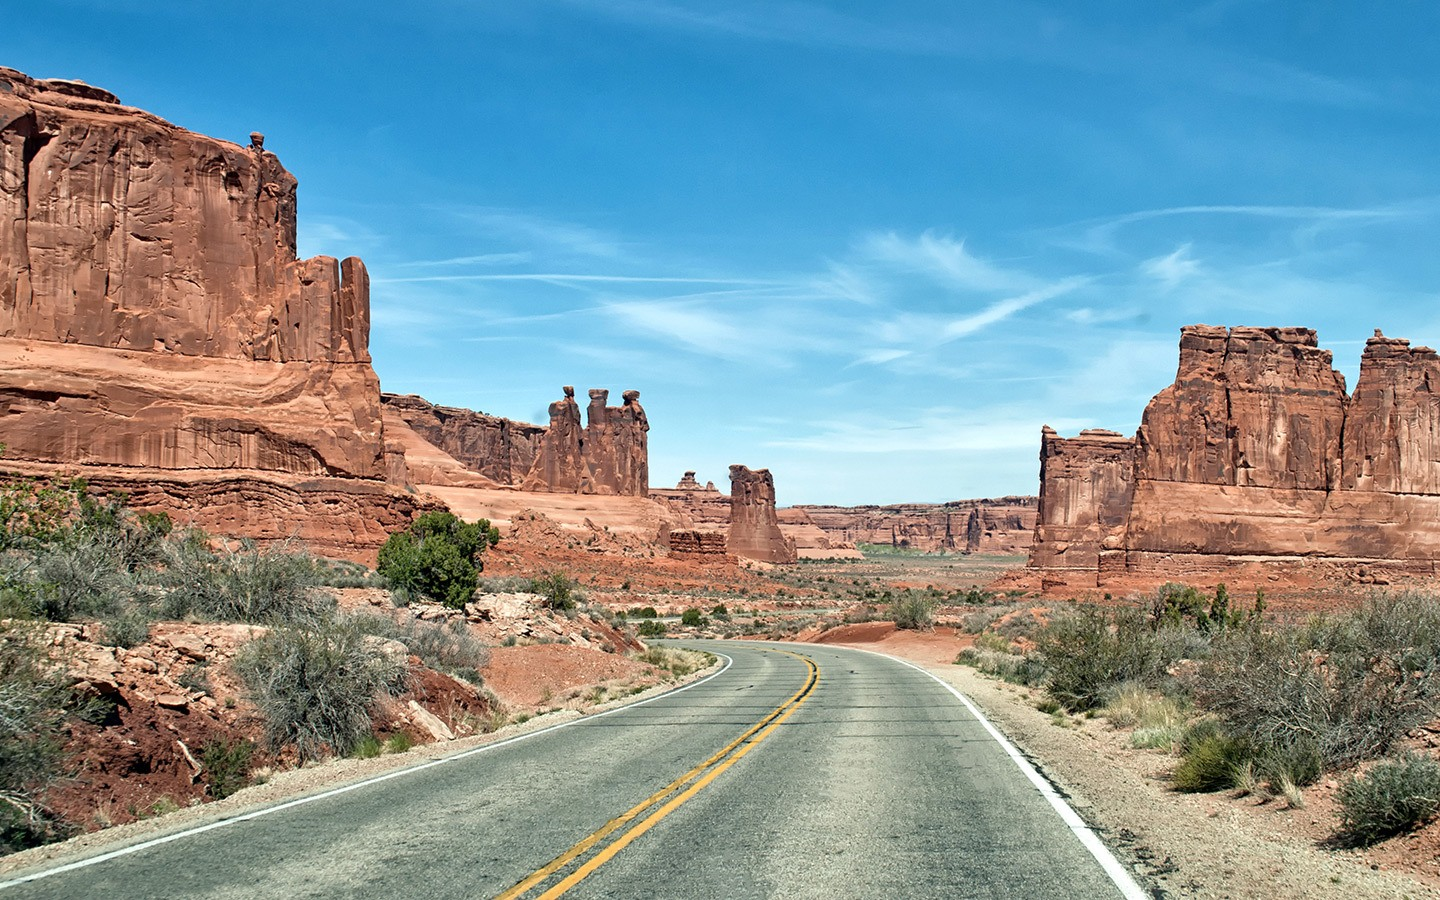 A 14-day Southwest USA road trip itinerary